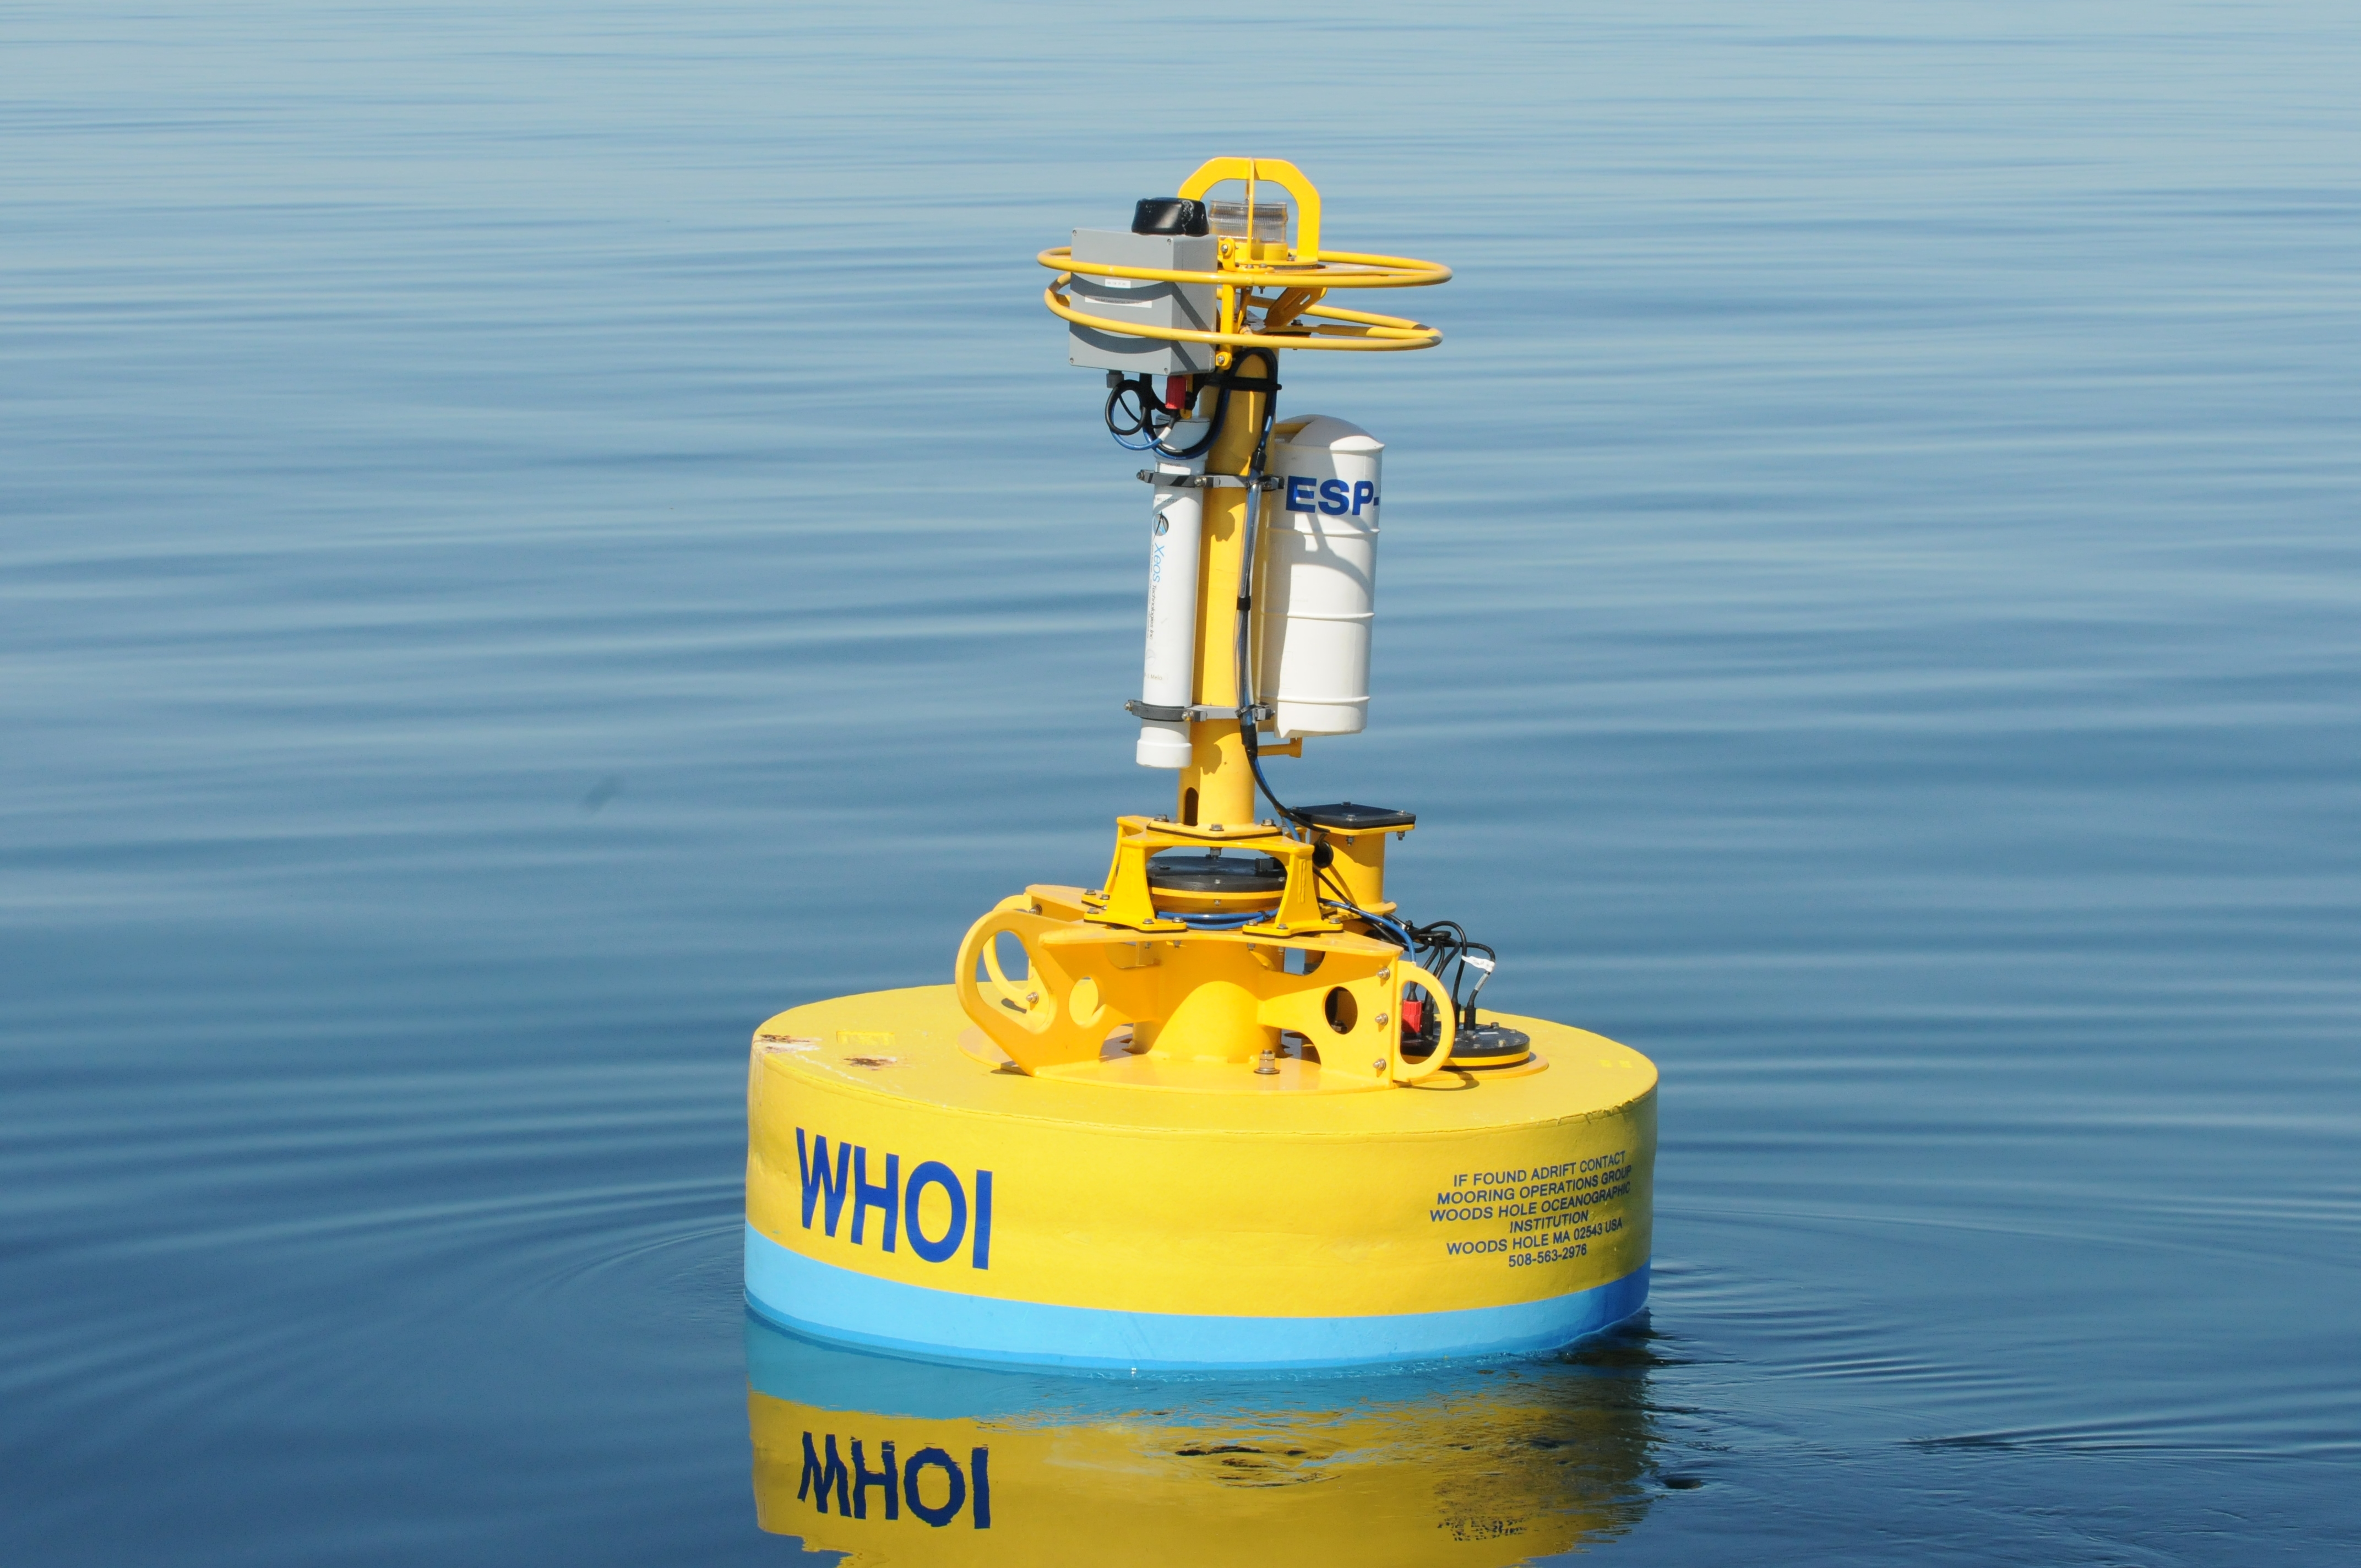 woods hole oceanographic institution buoy in bay of fundy